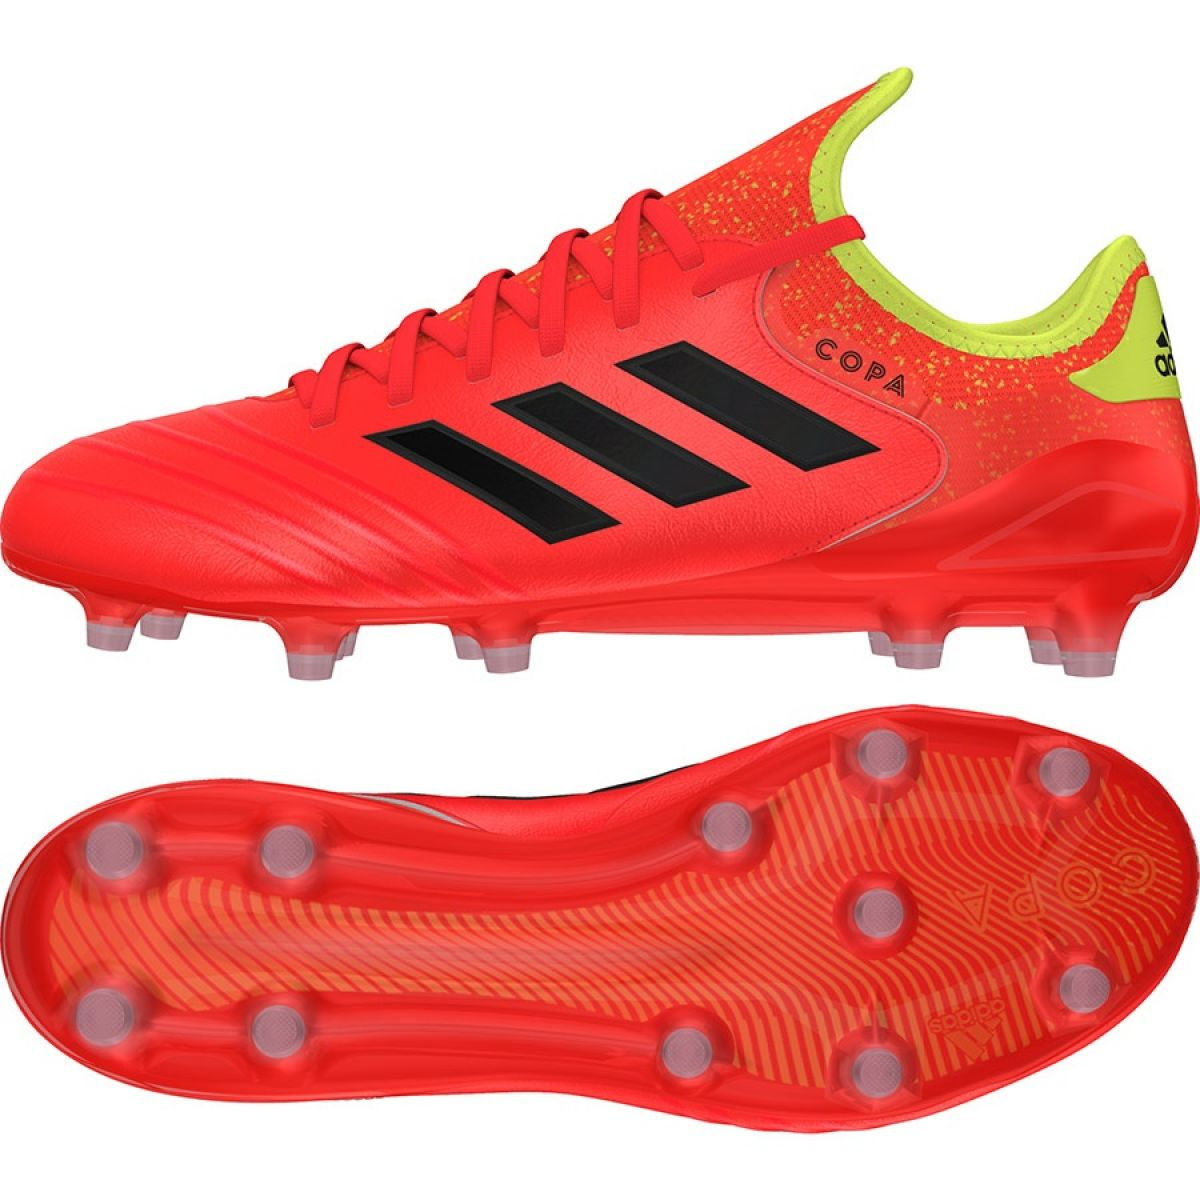 sports shoes c9b73 ea42d Buty piłkarskie adidas Copa 18.1 FG M DB21 45 13